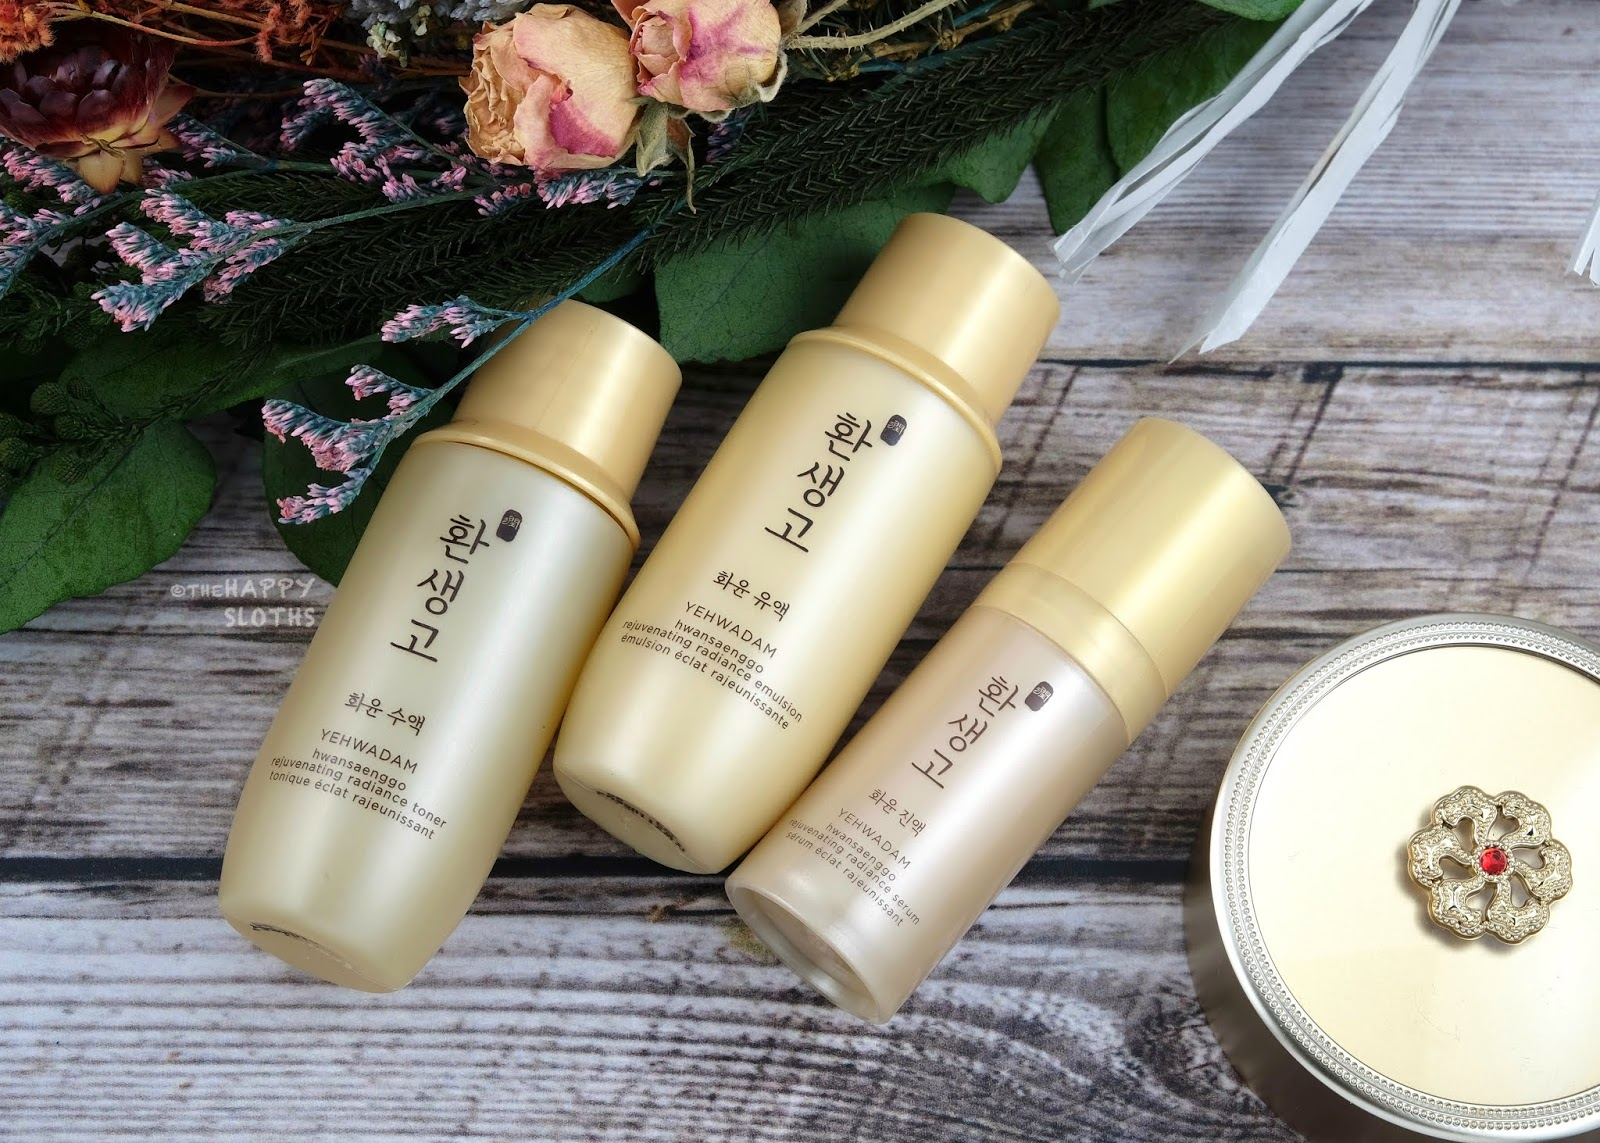 THE FACE SHOP | Yehwadam Hwansaenggo Rejuvenating Radiance Cream: Review